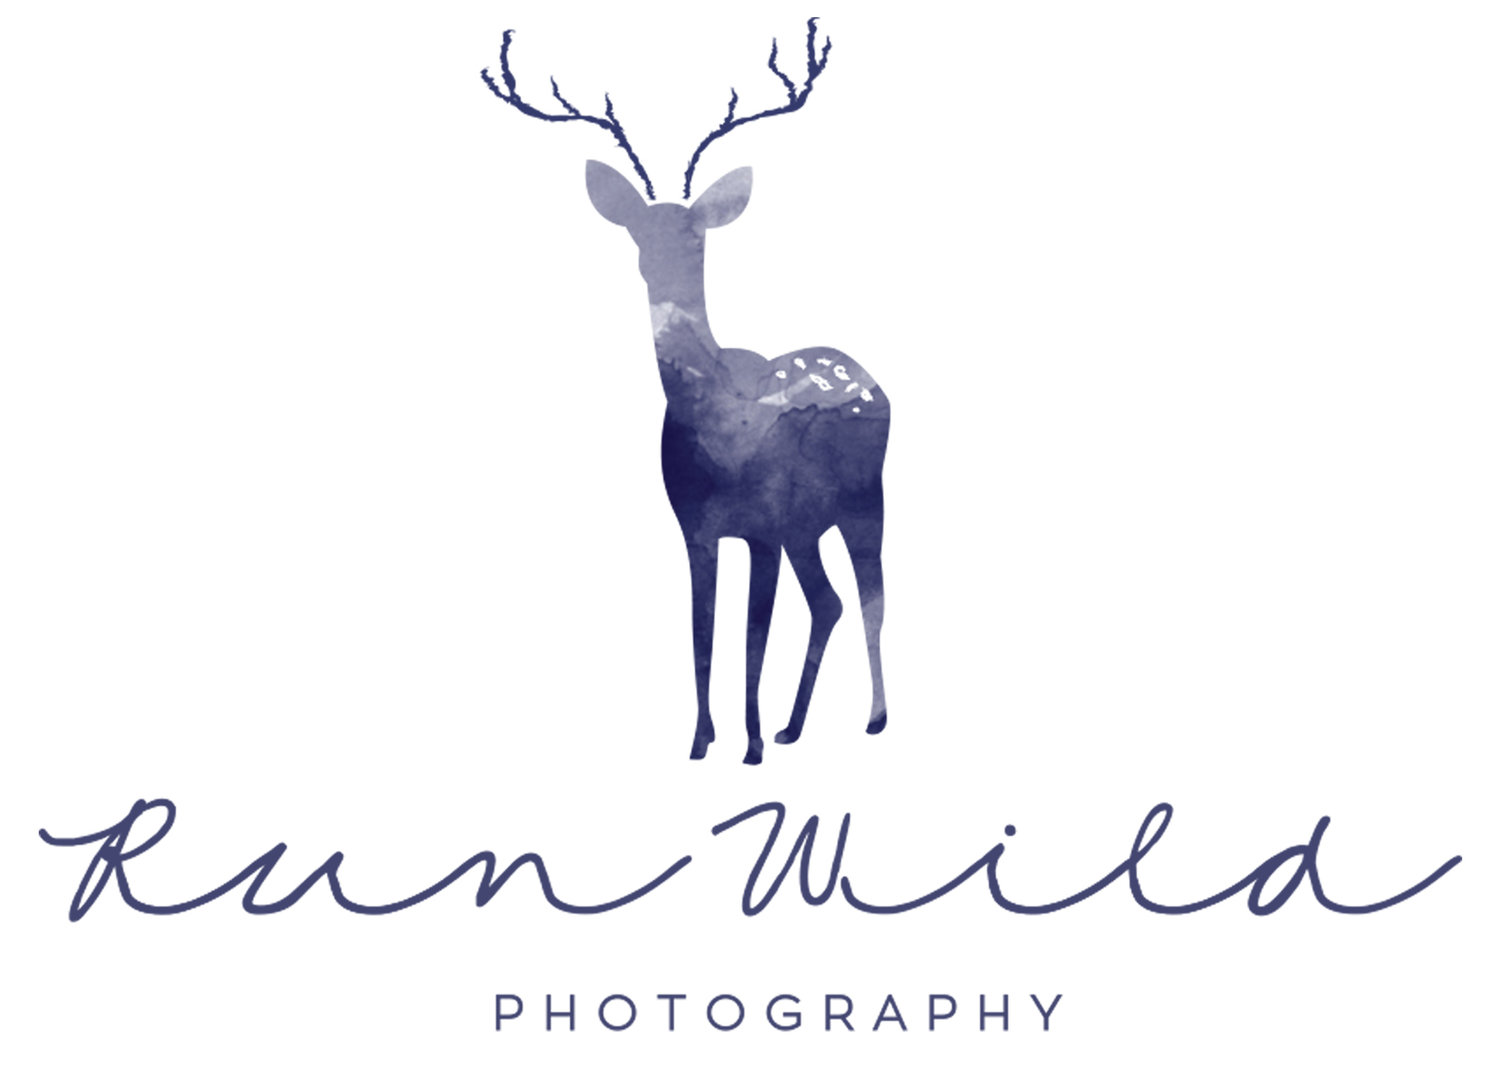 Run Wild Photography